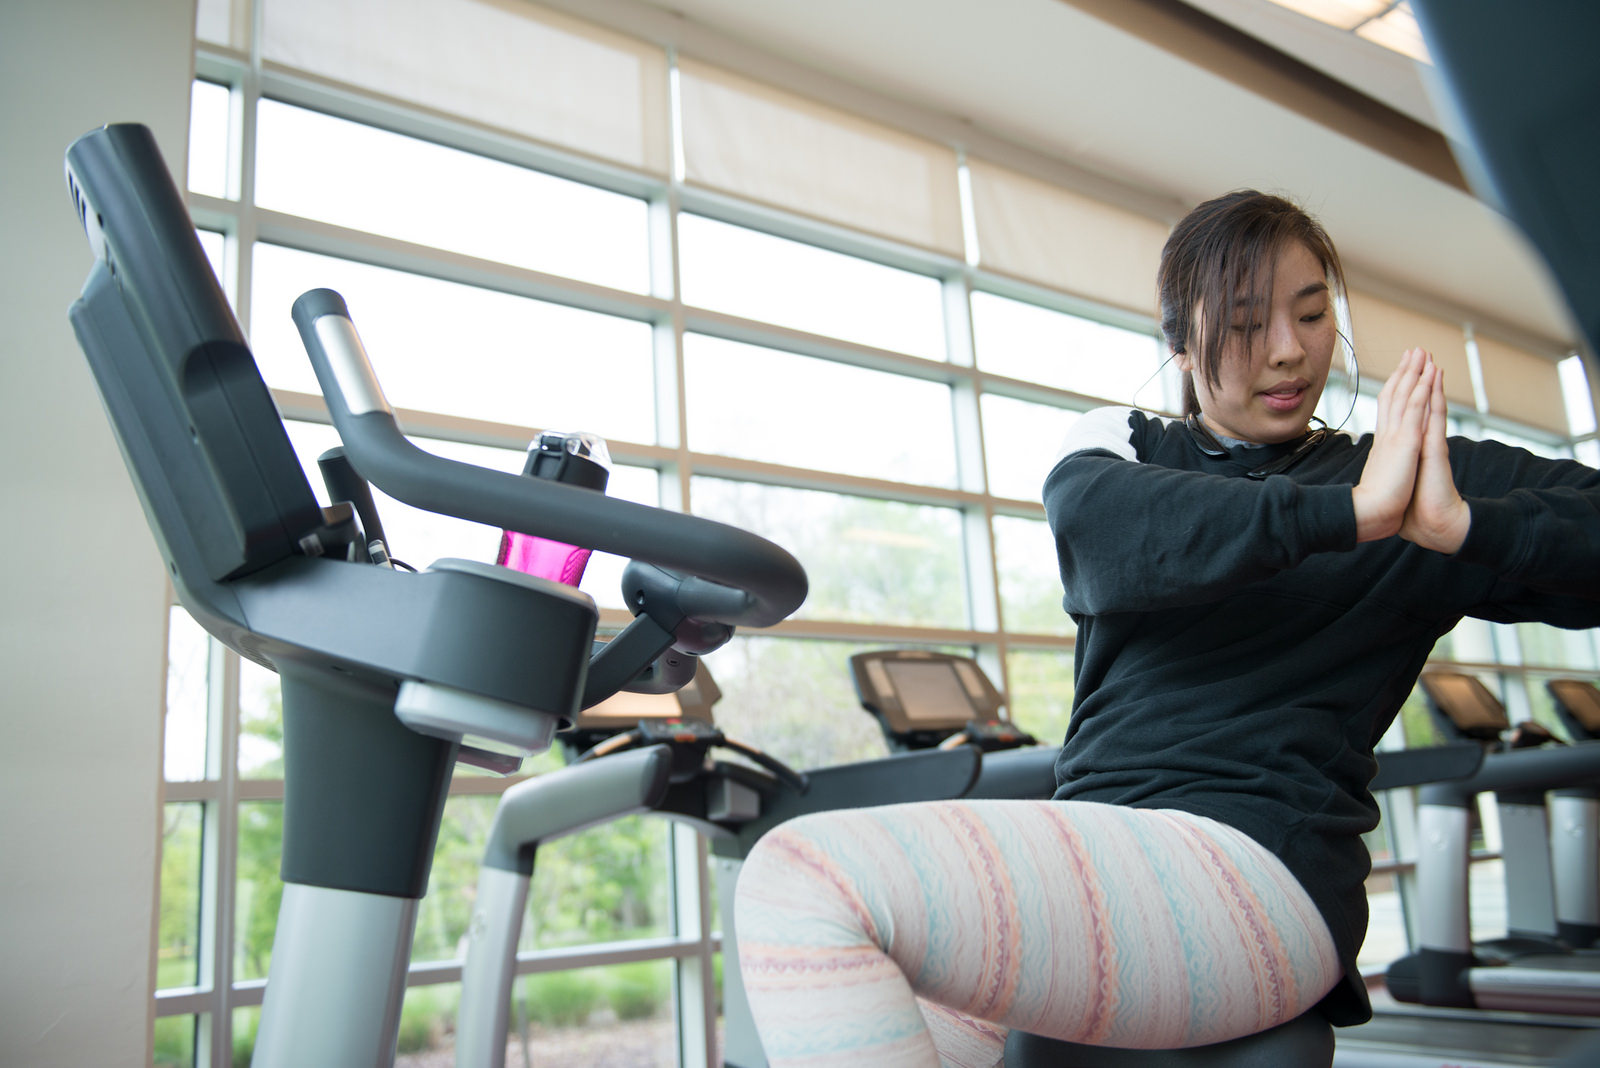 Woman at a stationary bike stretching.